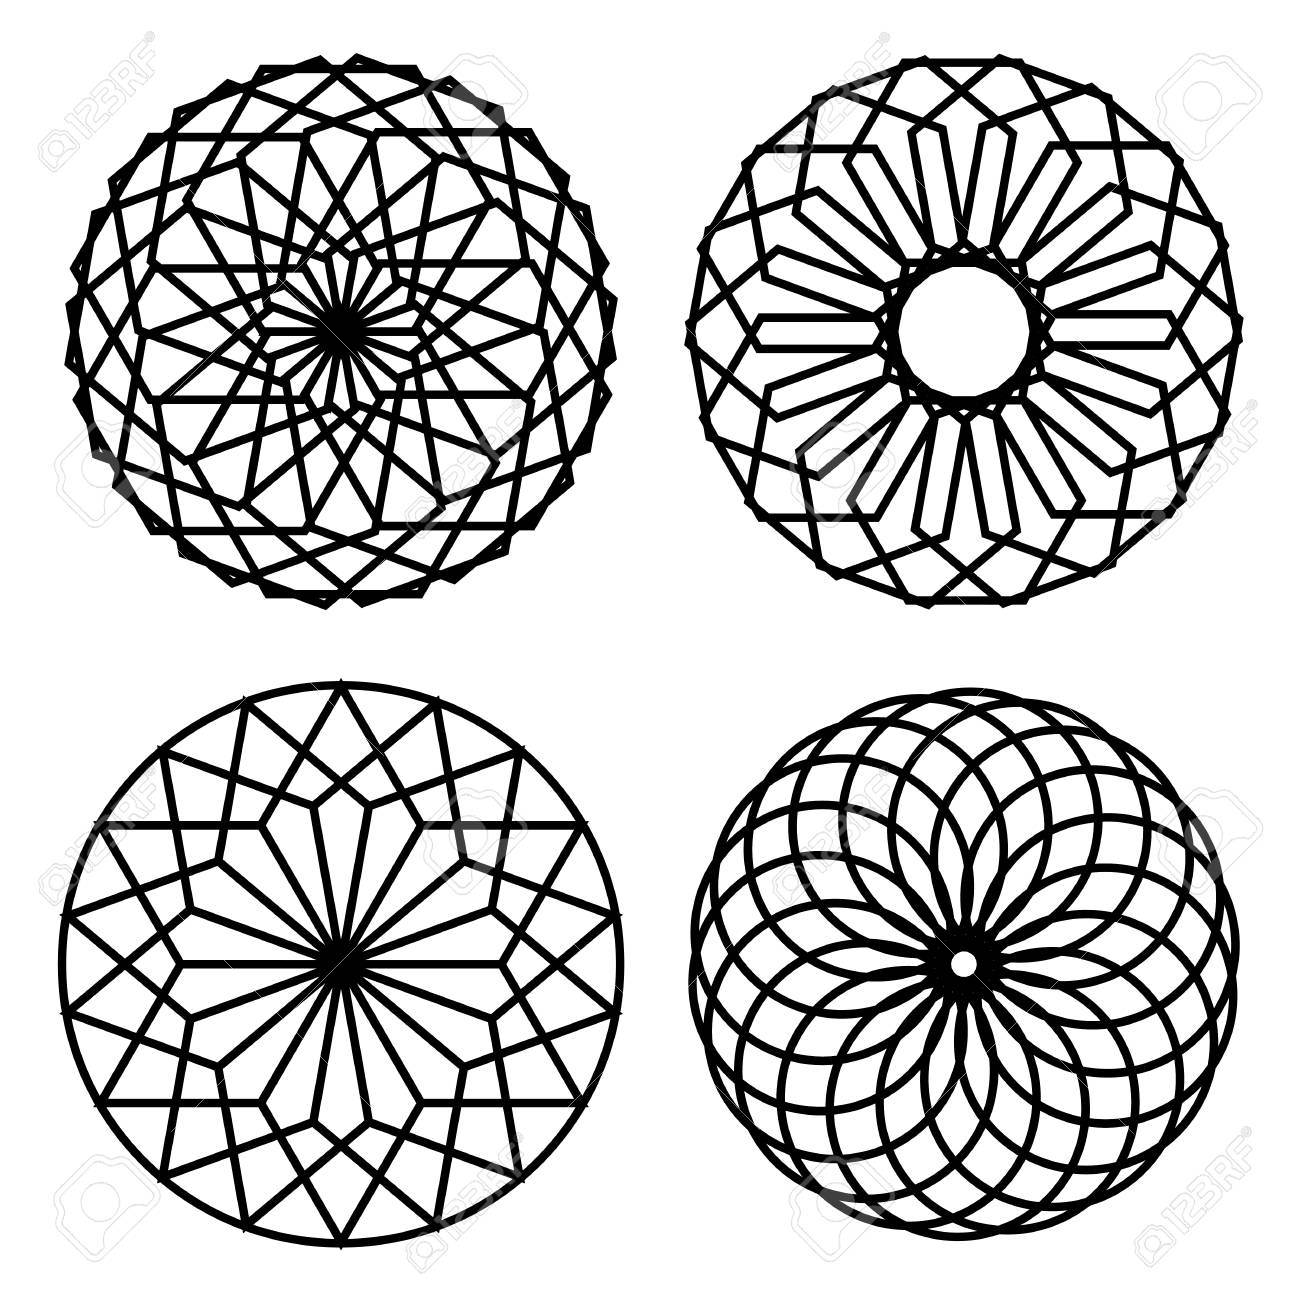 Simple geometric ornaments  Floral elements, Vector set of circular